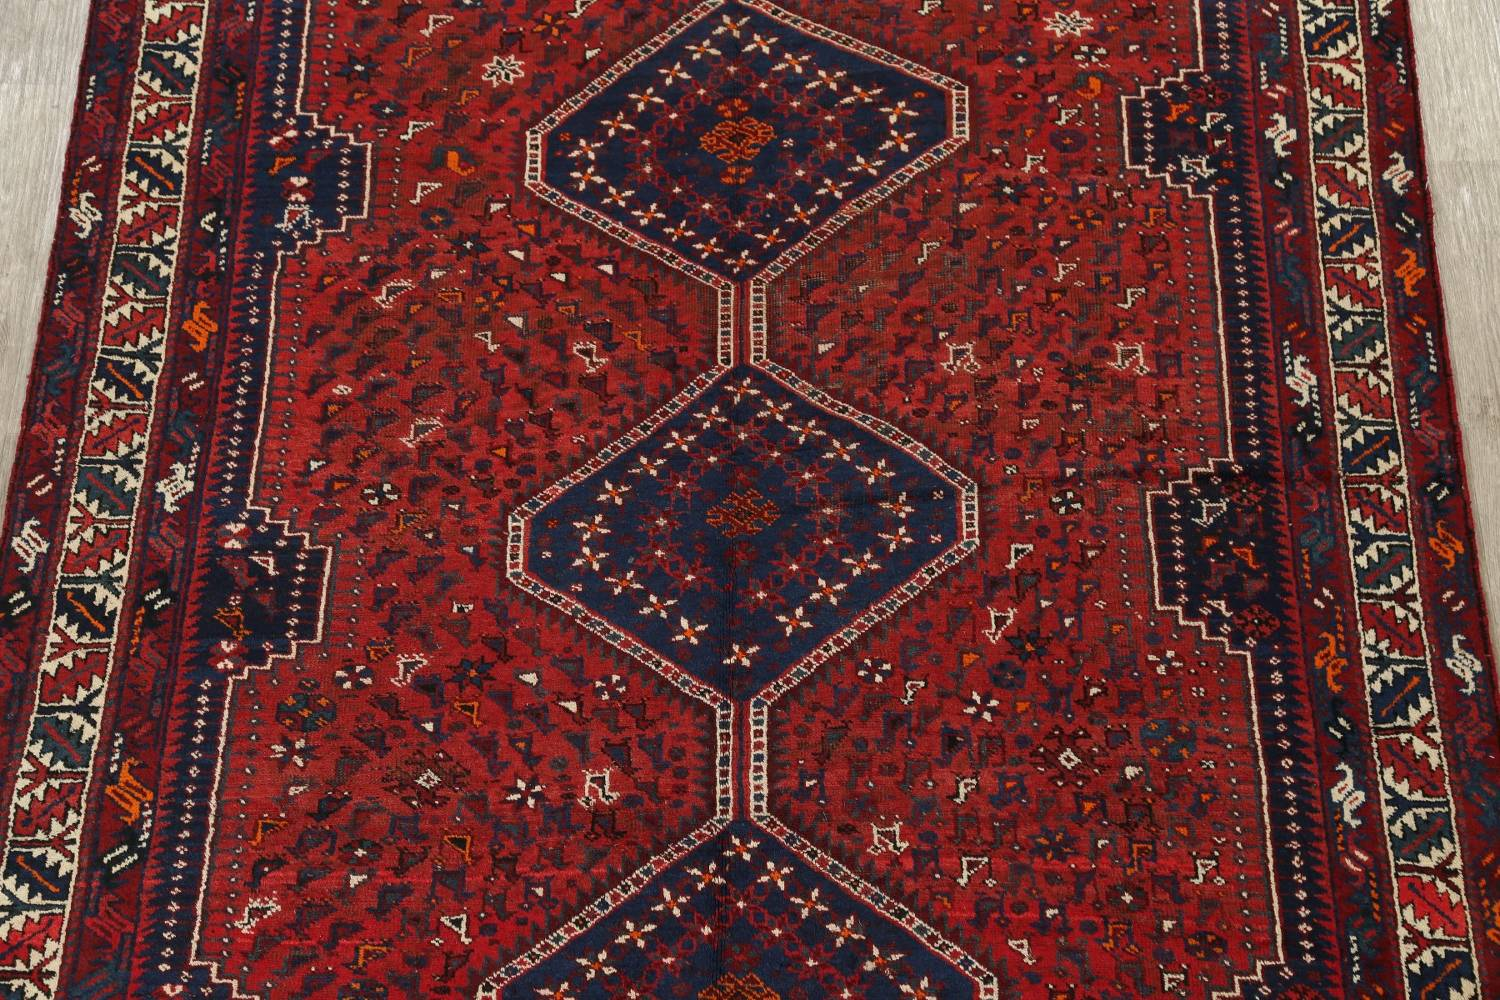 Antique Tribal Qashqai Persian Hand-Knotted 7x10 Wool Area Rug image 3